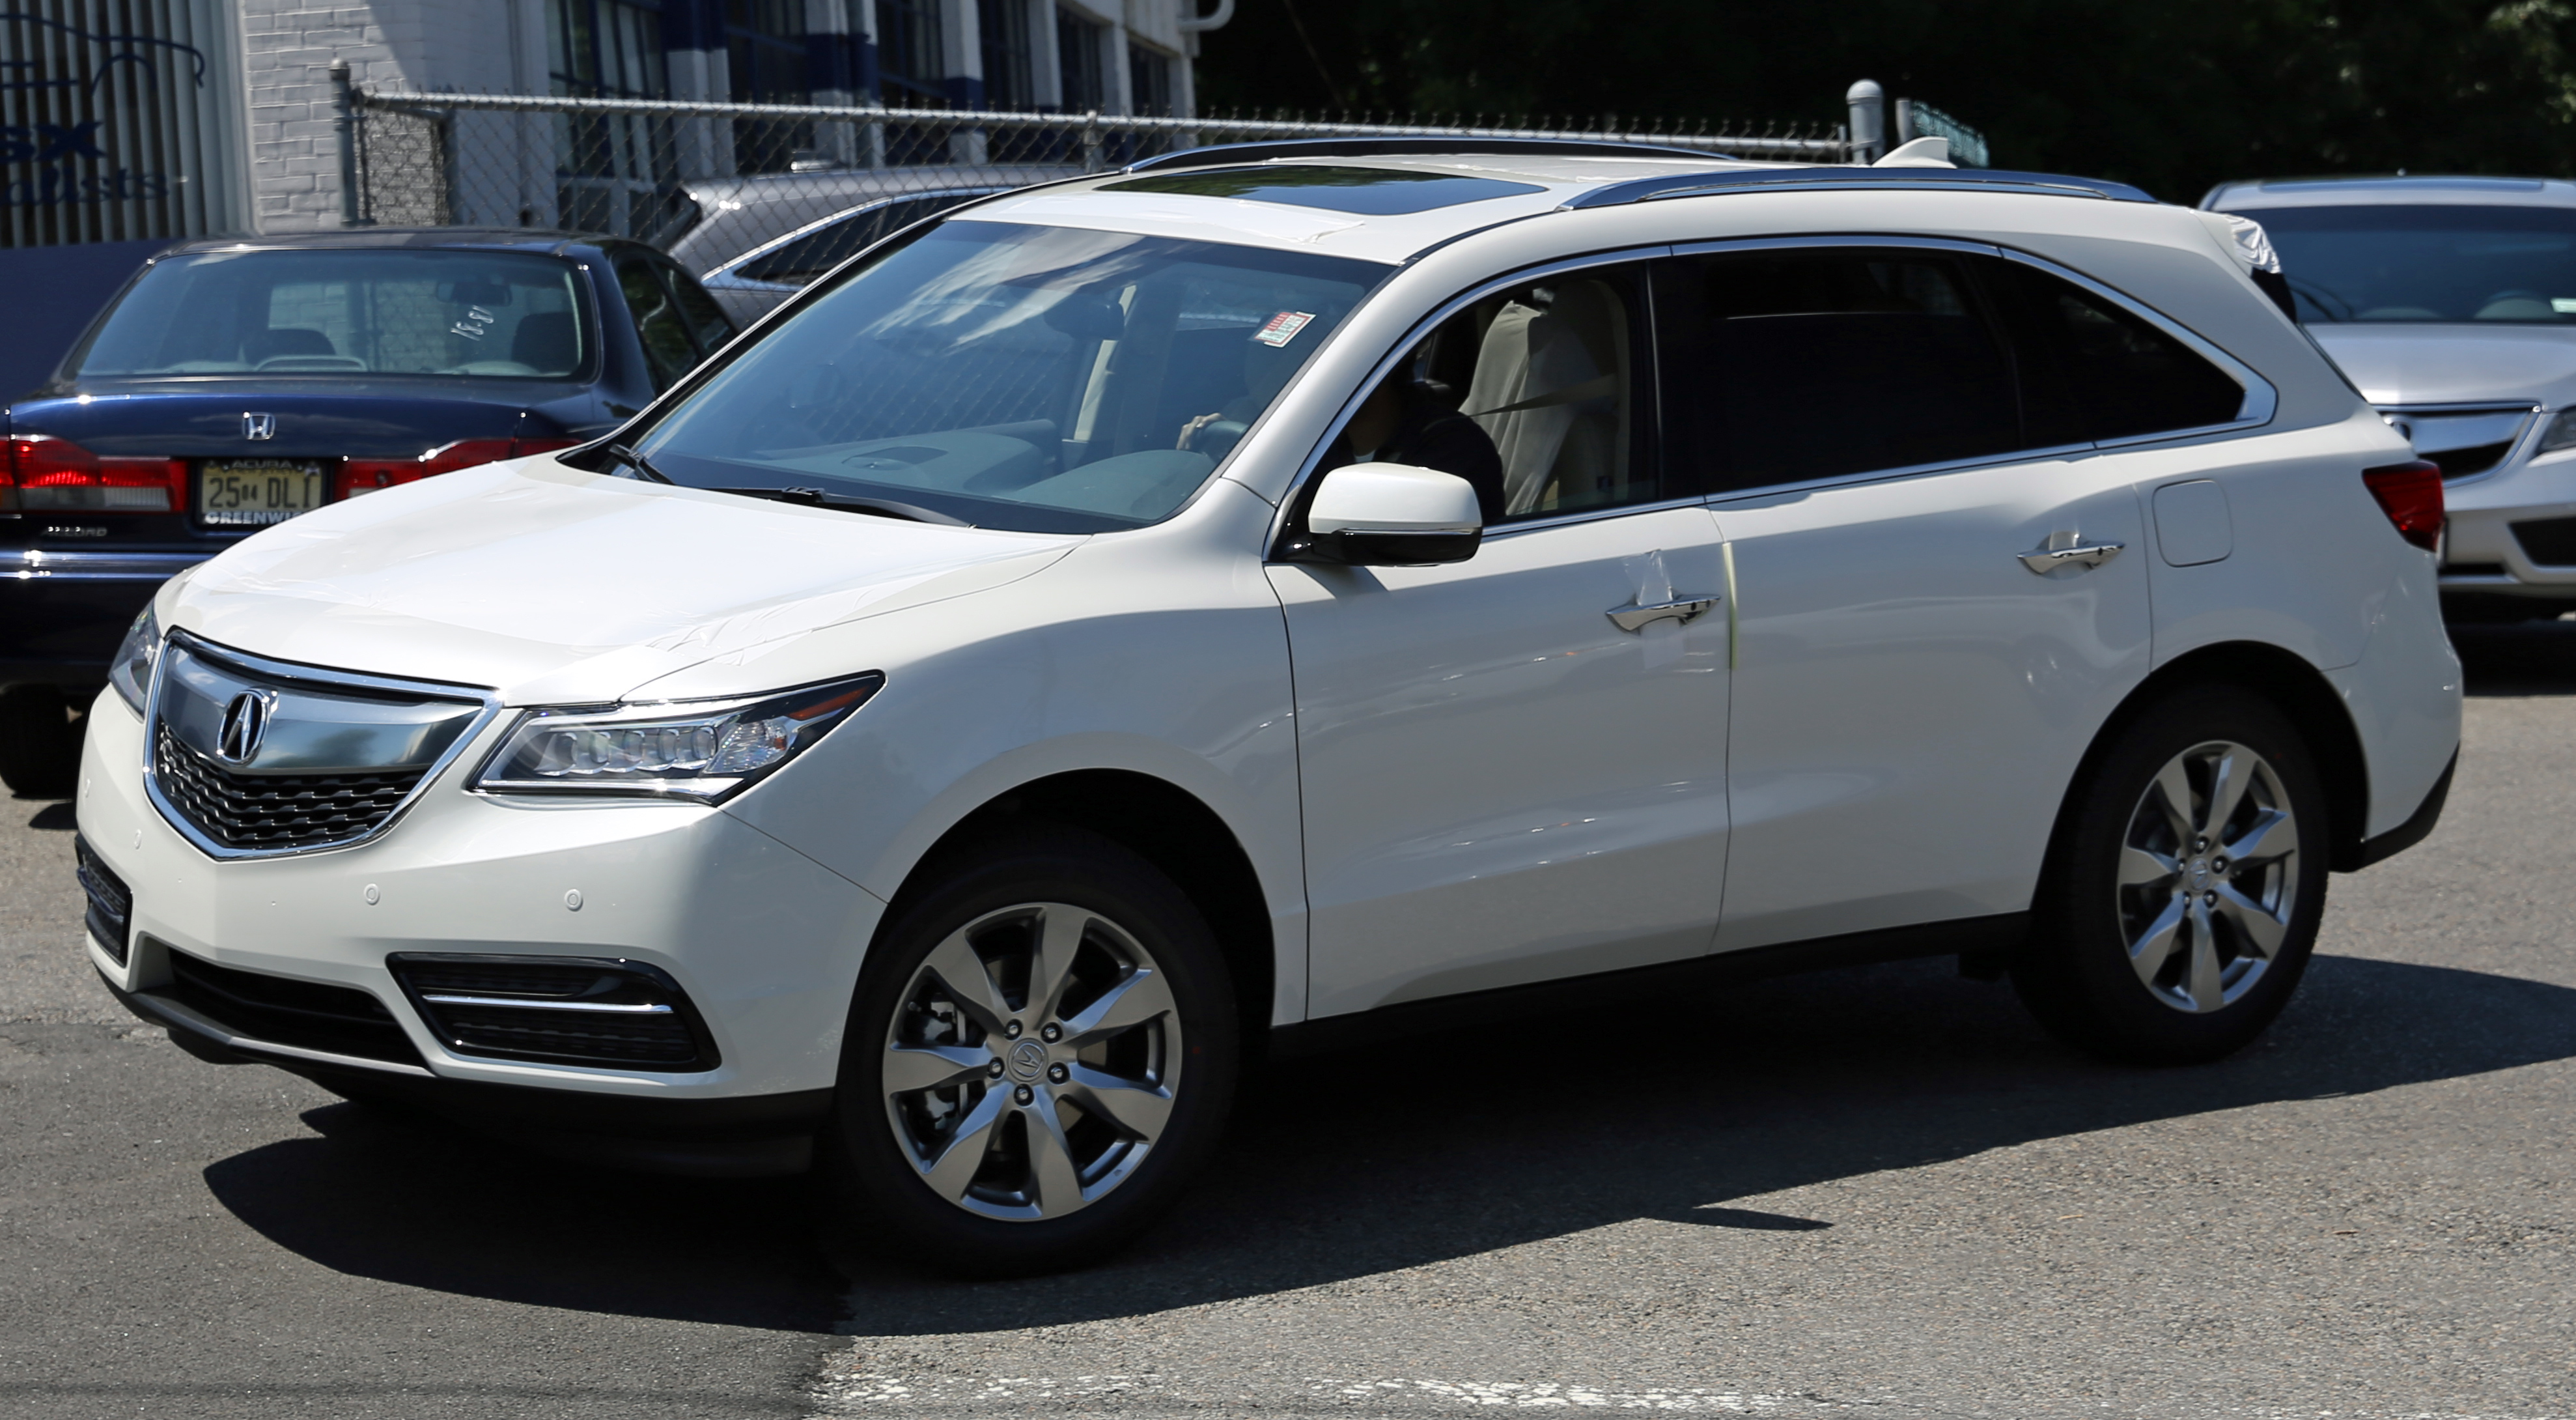 2010 acura mdx ii pictures information and specs auto database com